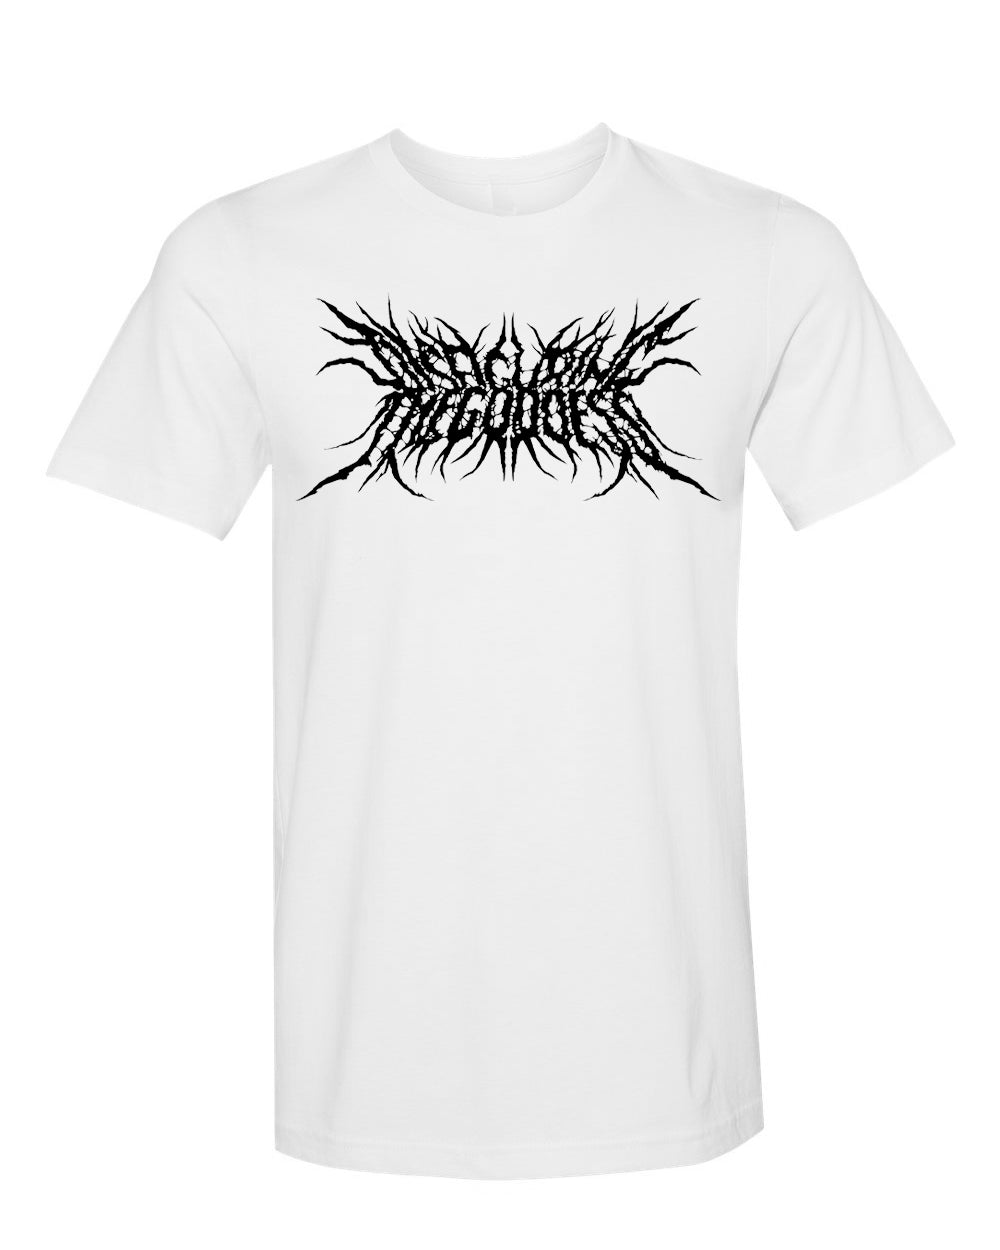 Disfiguring The Goddess Logo Shirt (White / Black)